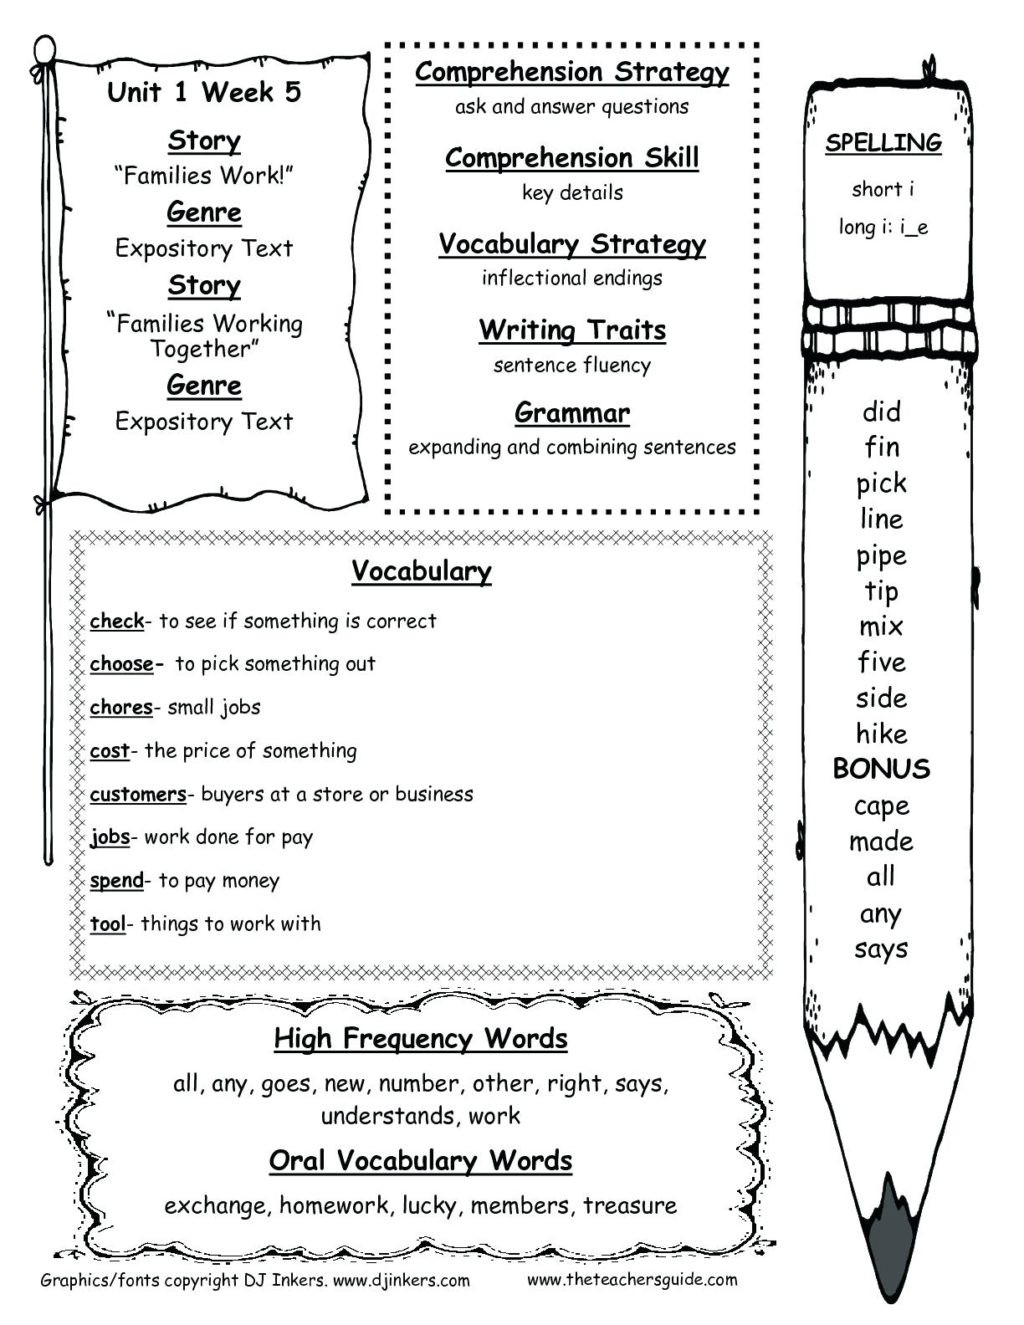 2nd and 3rd grade math second reading prehension printable passages wonders resources printouts for unit one week five worksheets free activities kindergarten students short 1024x1325